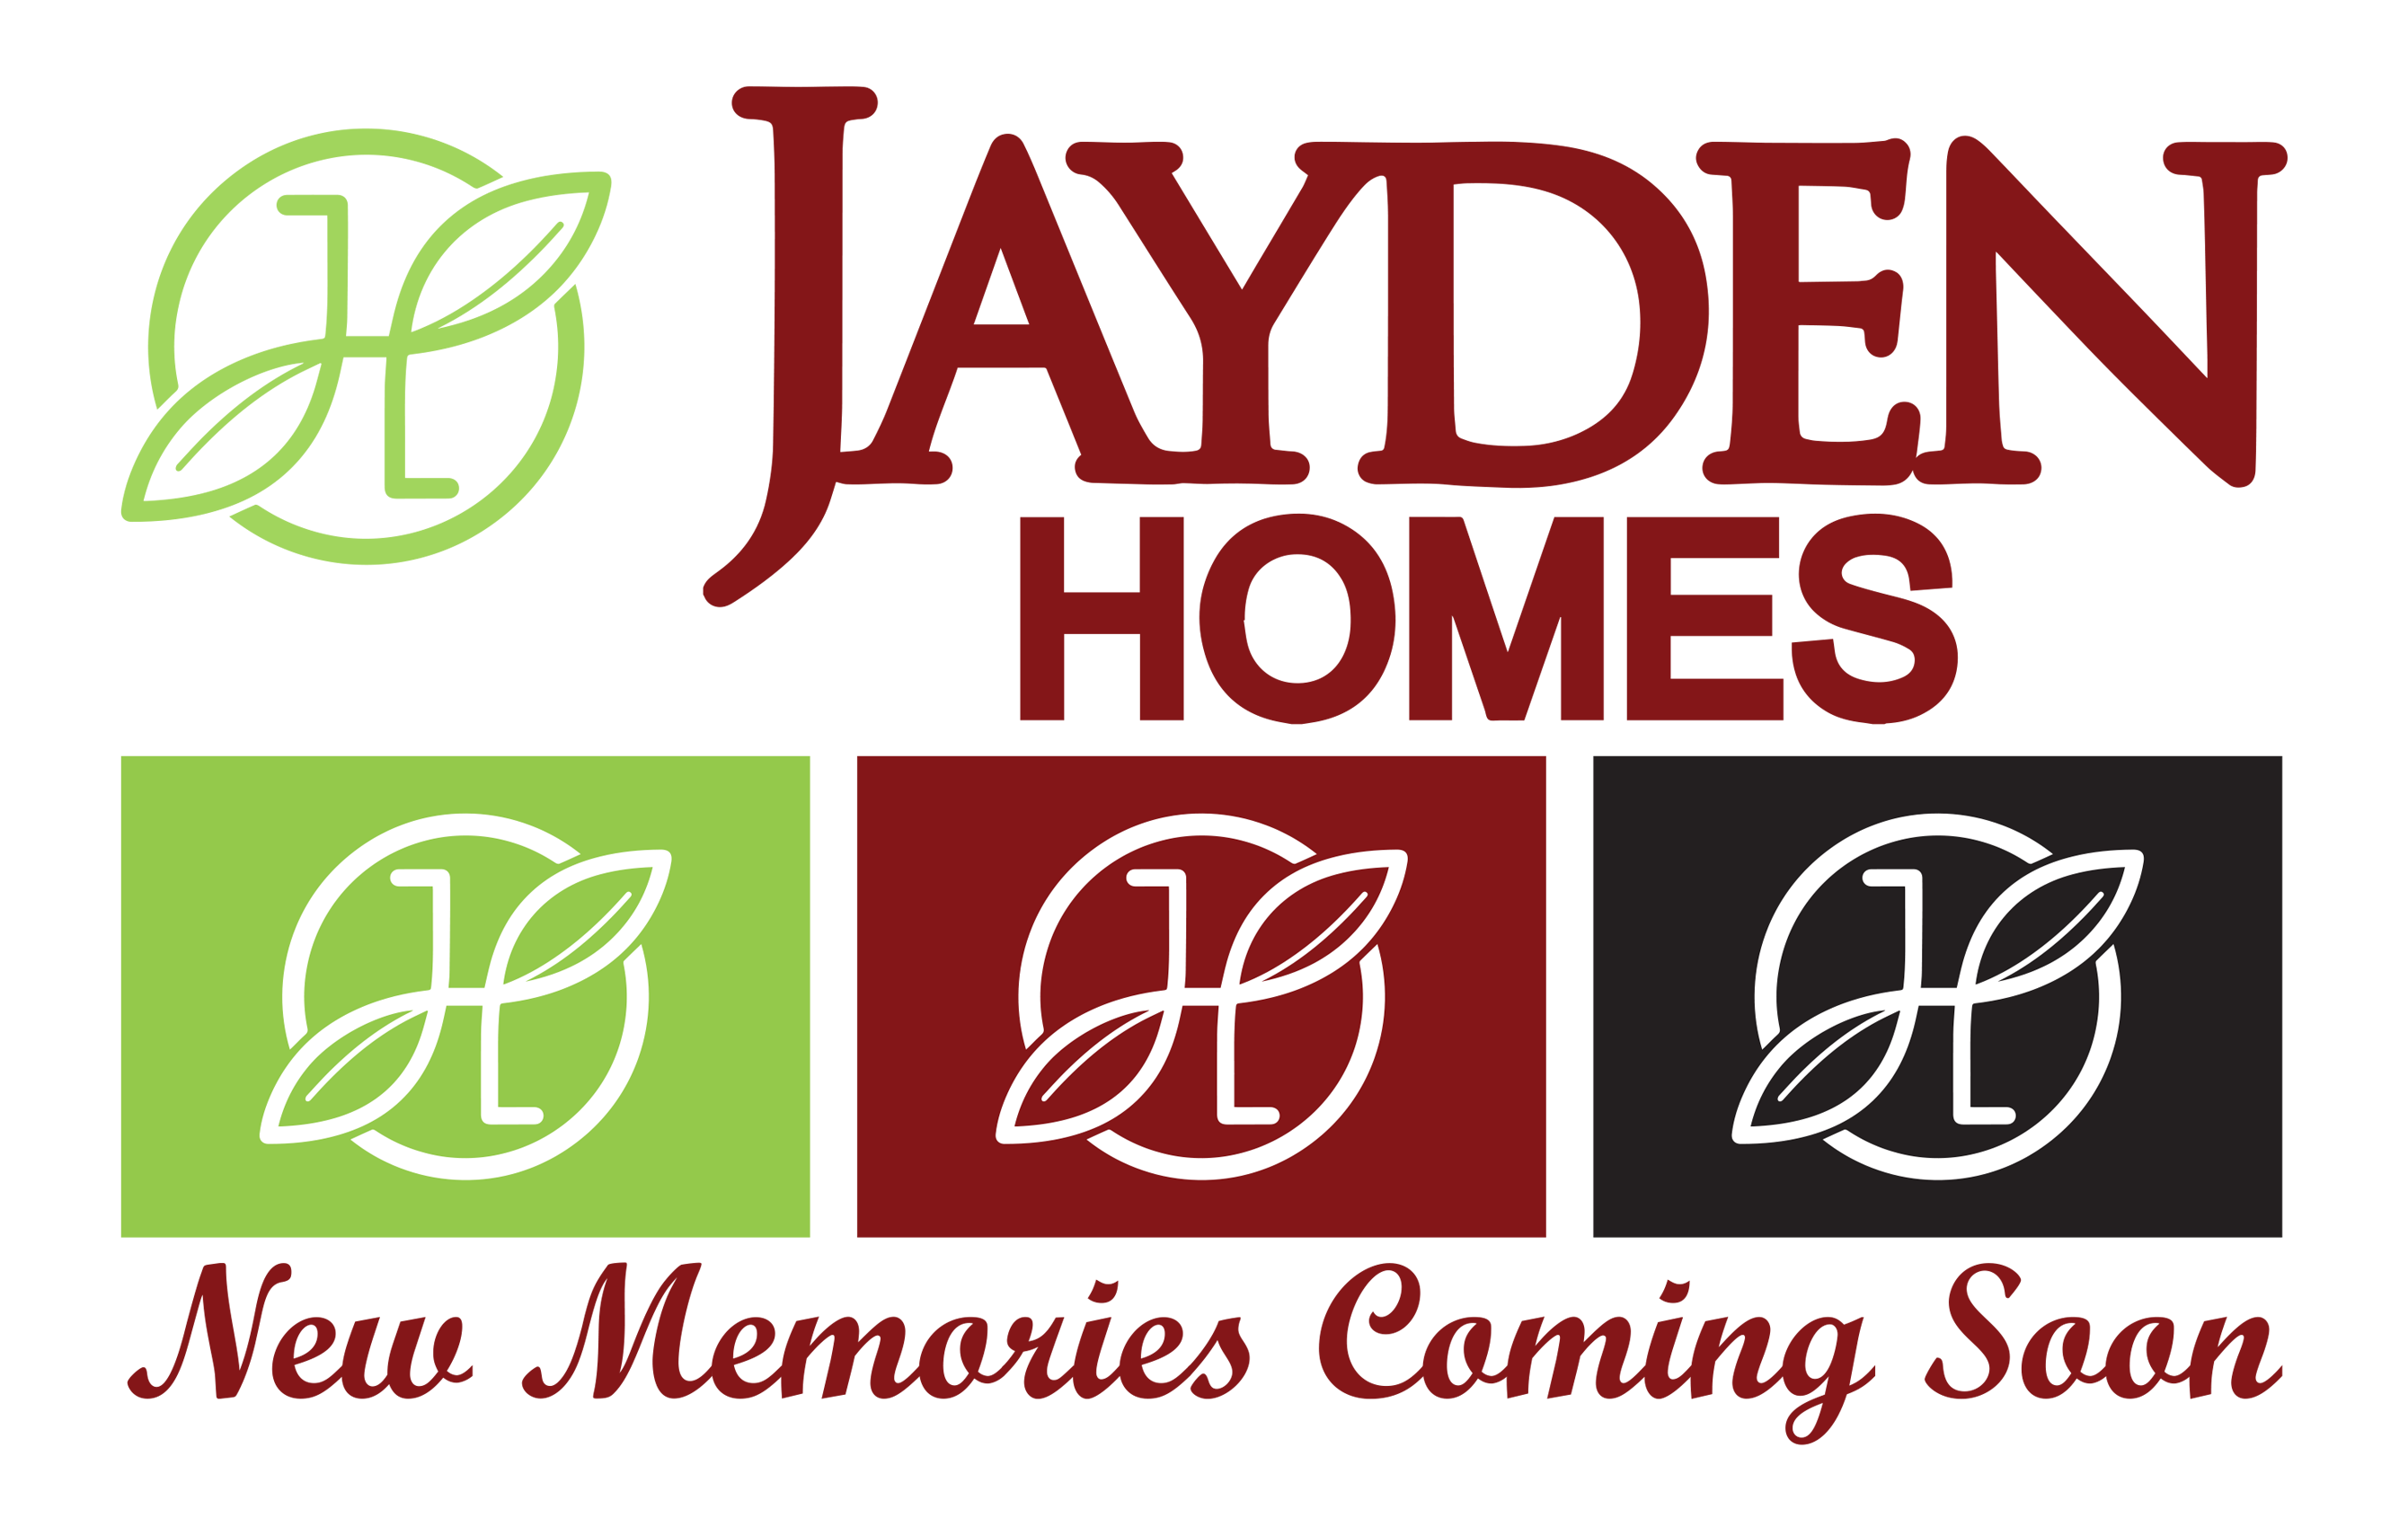 Colorado Springs Custom Homes by Jayden Homes